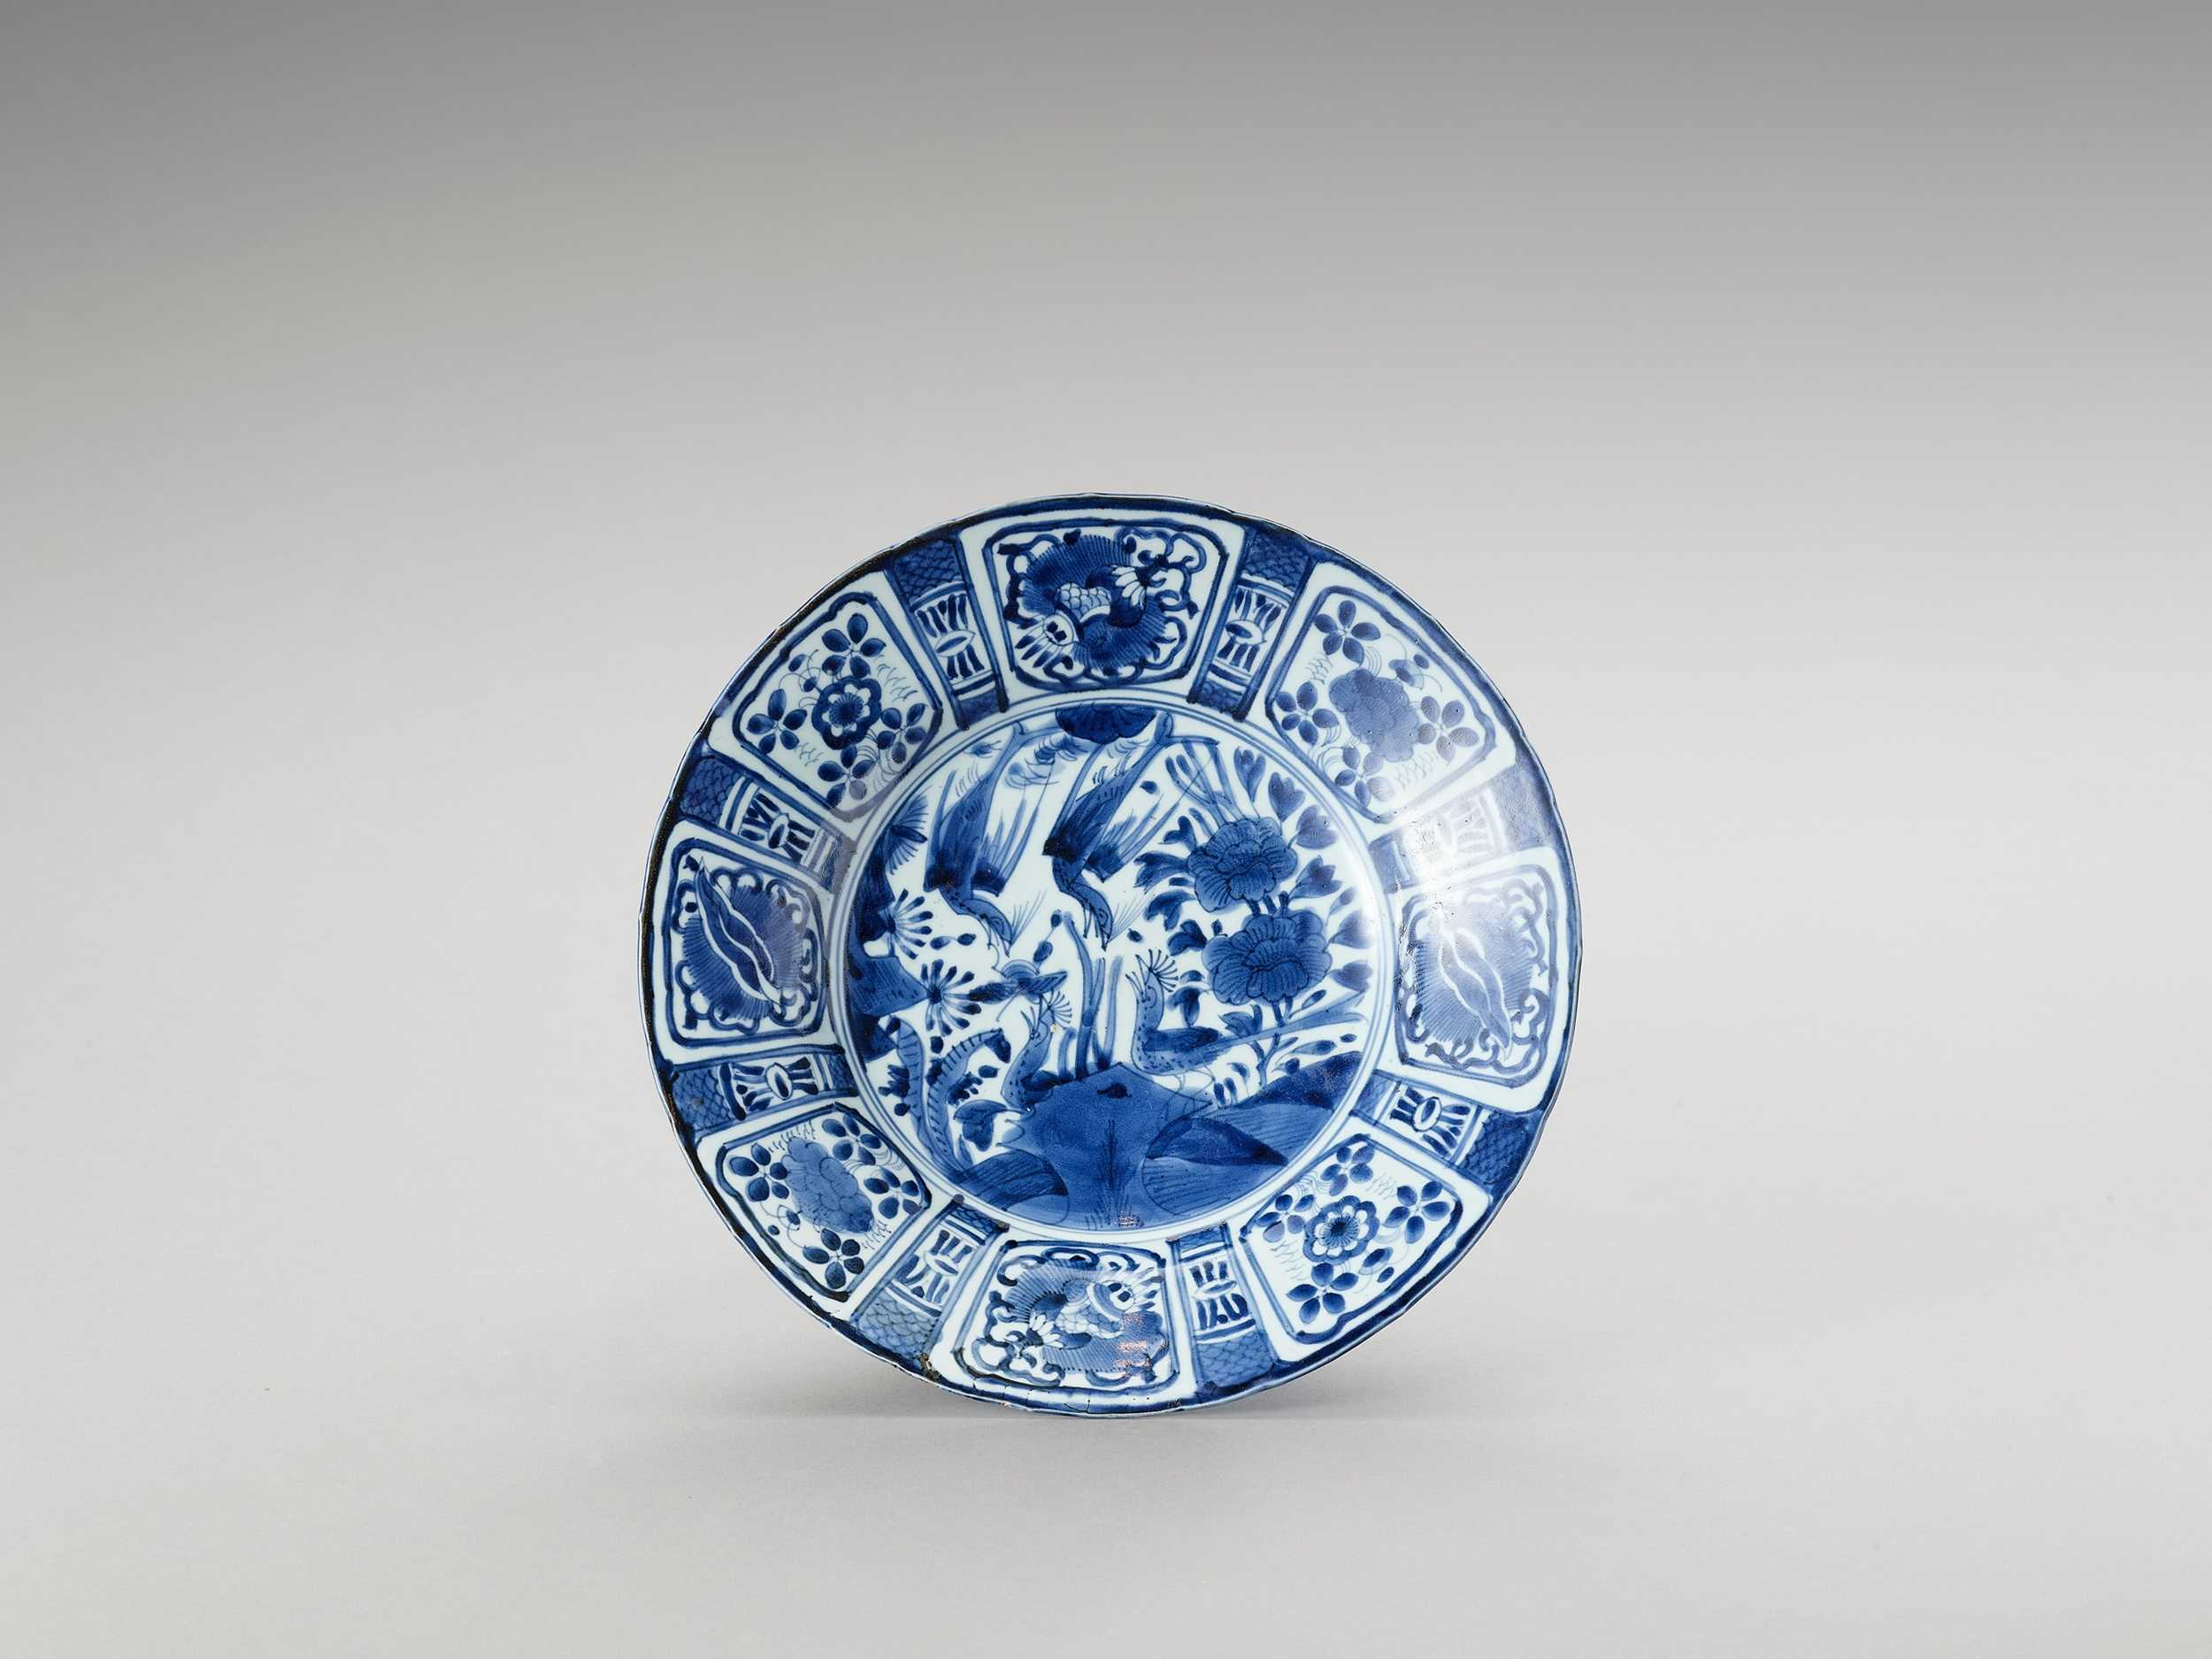 A BLUE AND WHITE PORCELAIN DISH